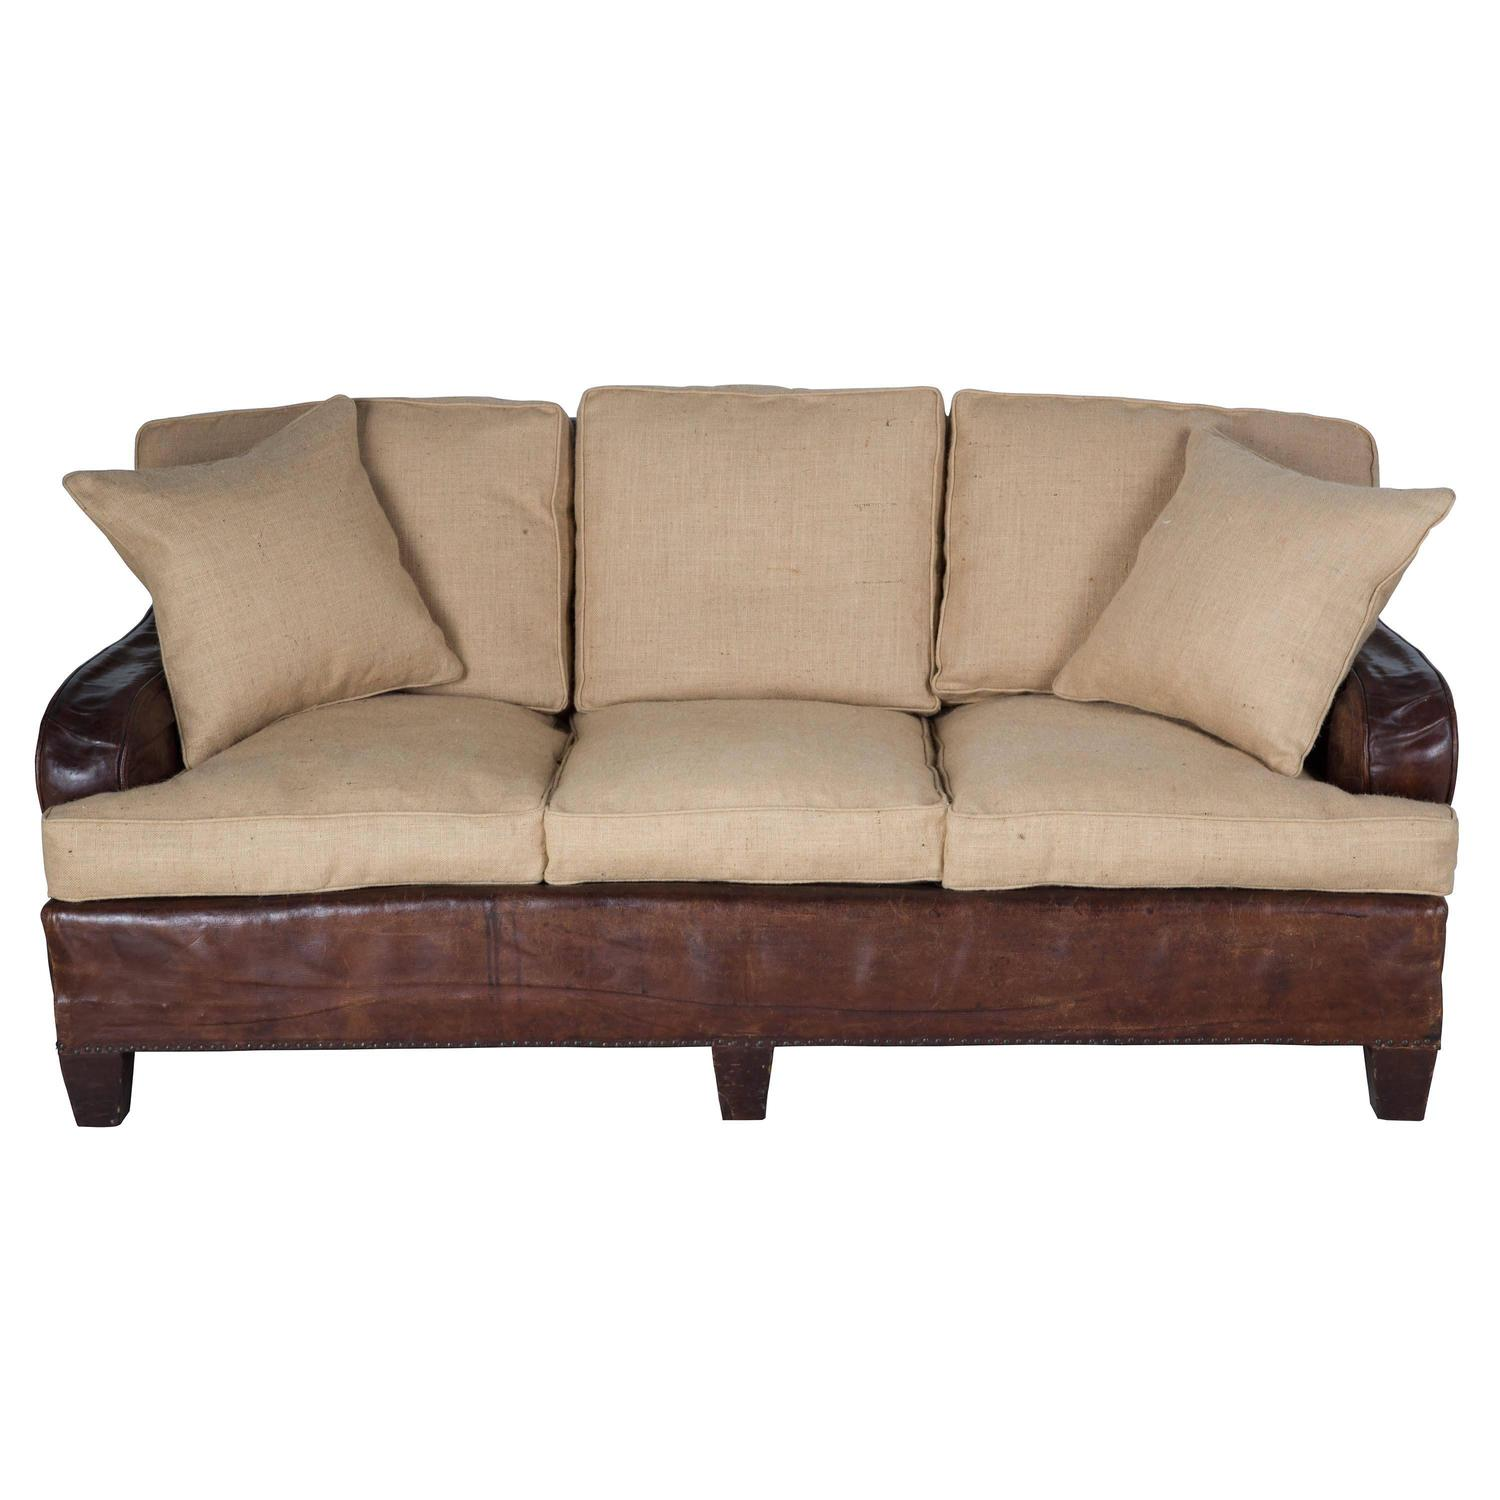 reupholster sofa in leather italia living sofas reupholstered three seat at 1stdibs